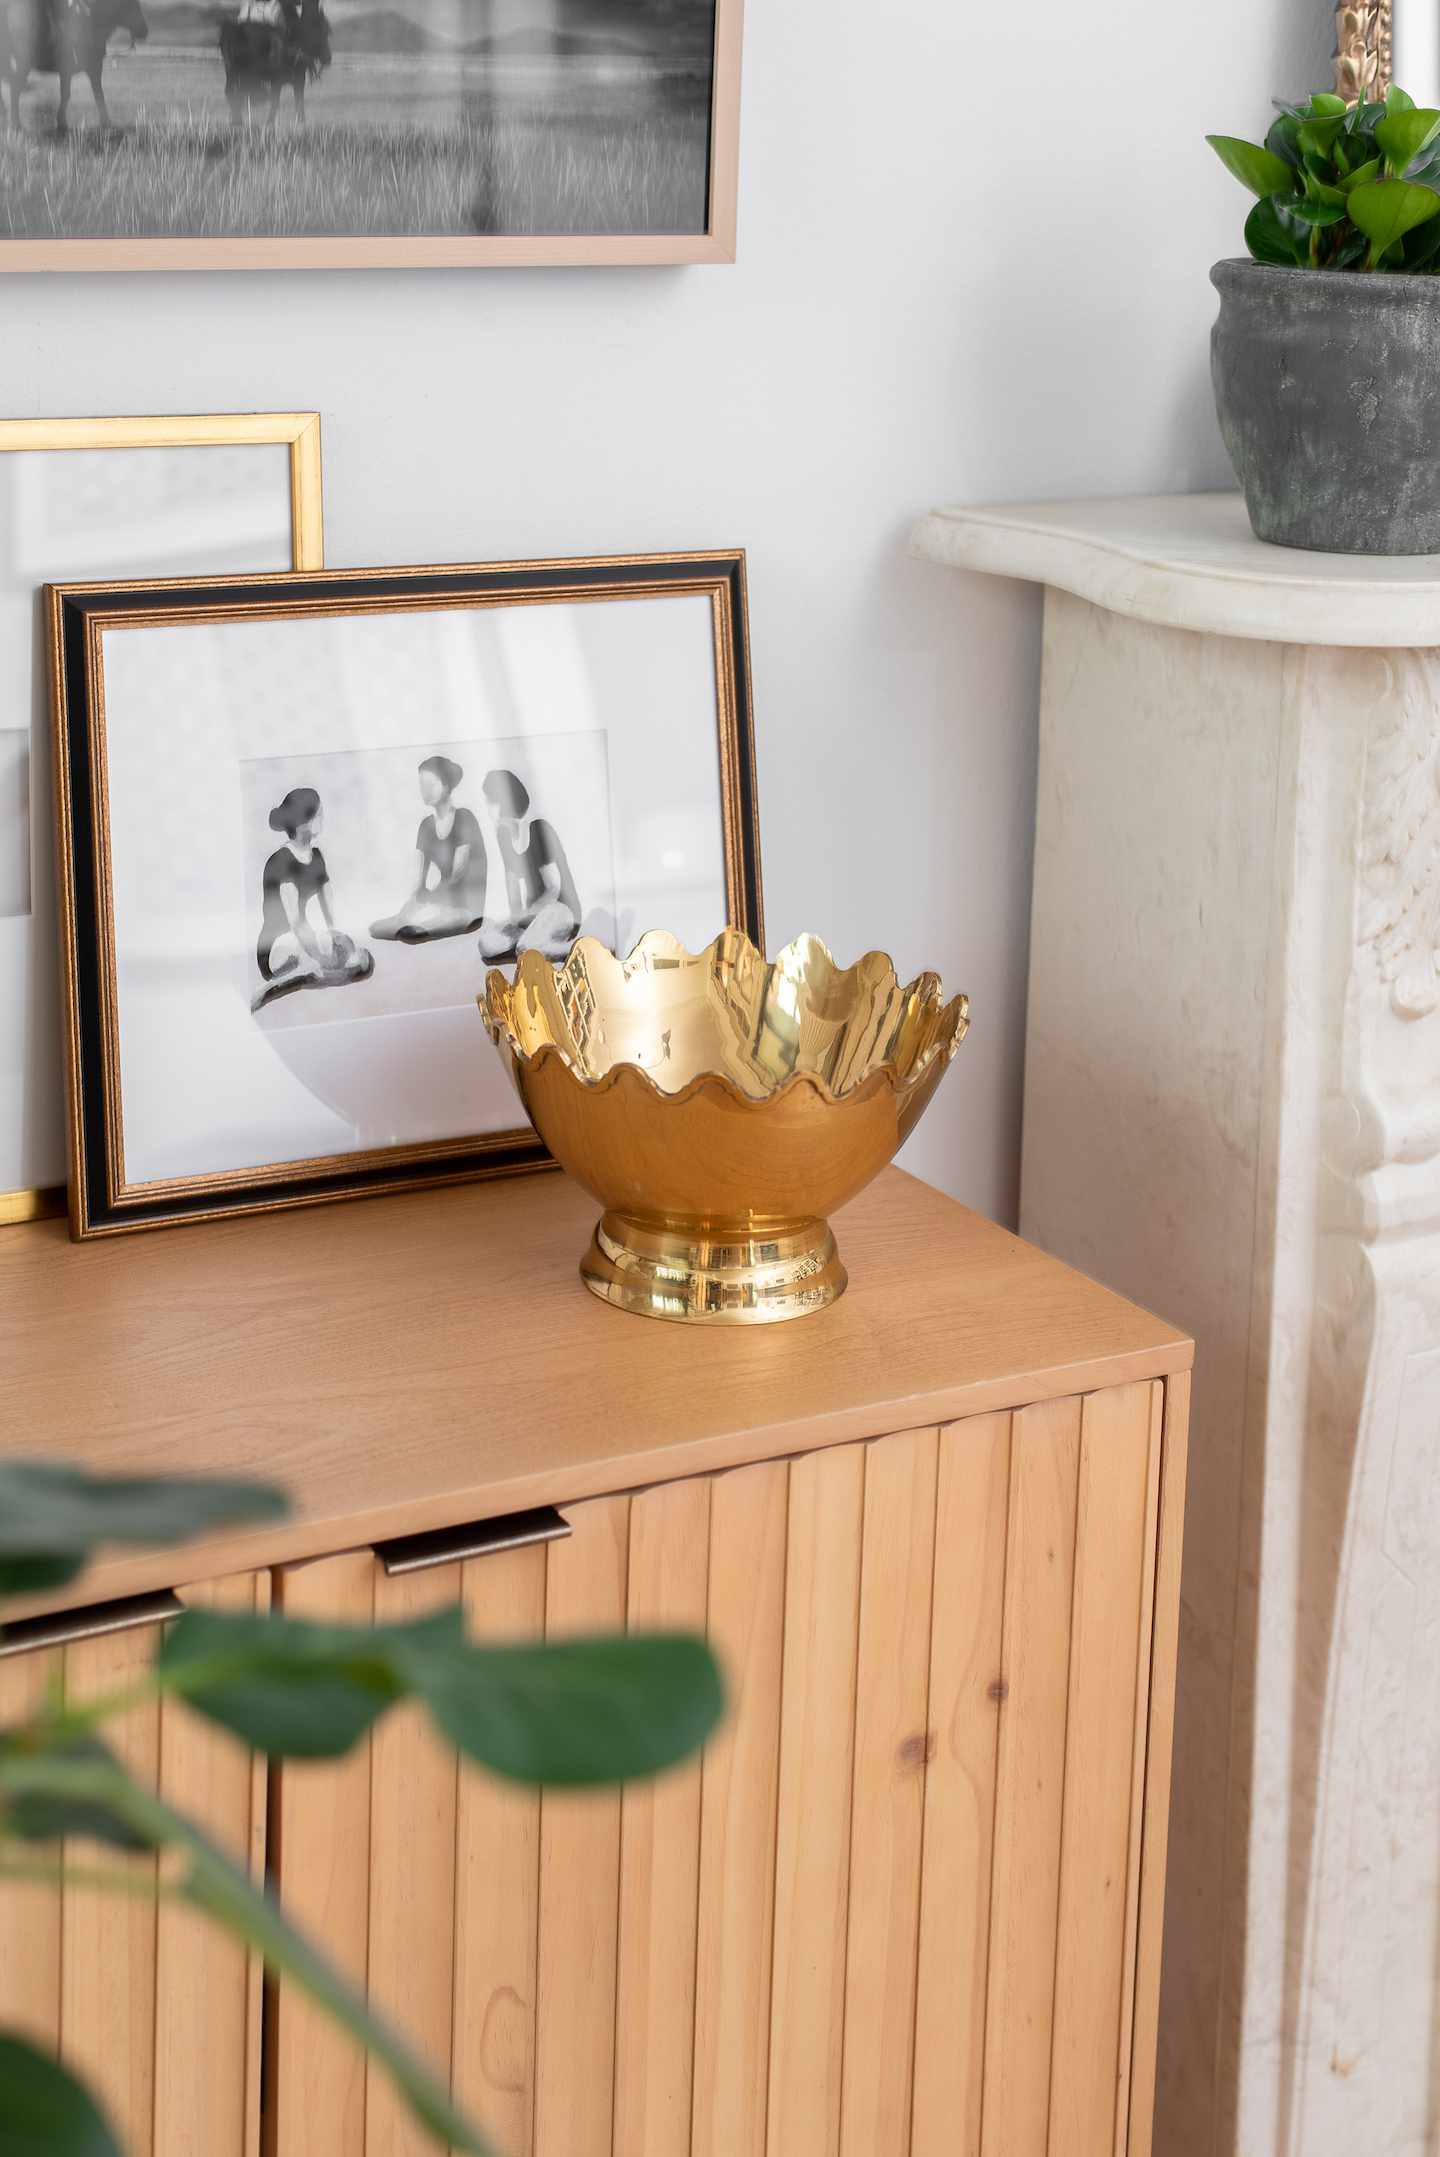 Wooden dresser with gold bowl on top.